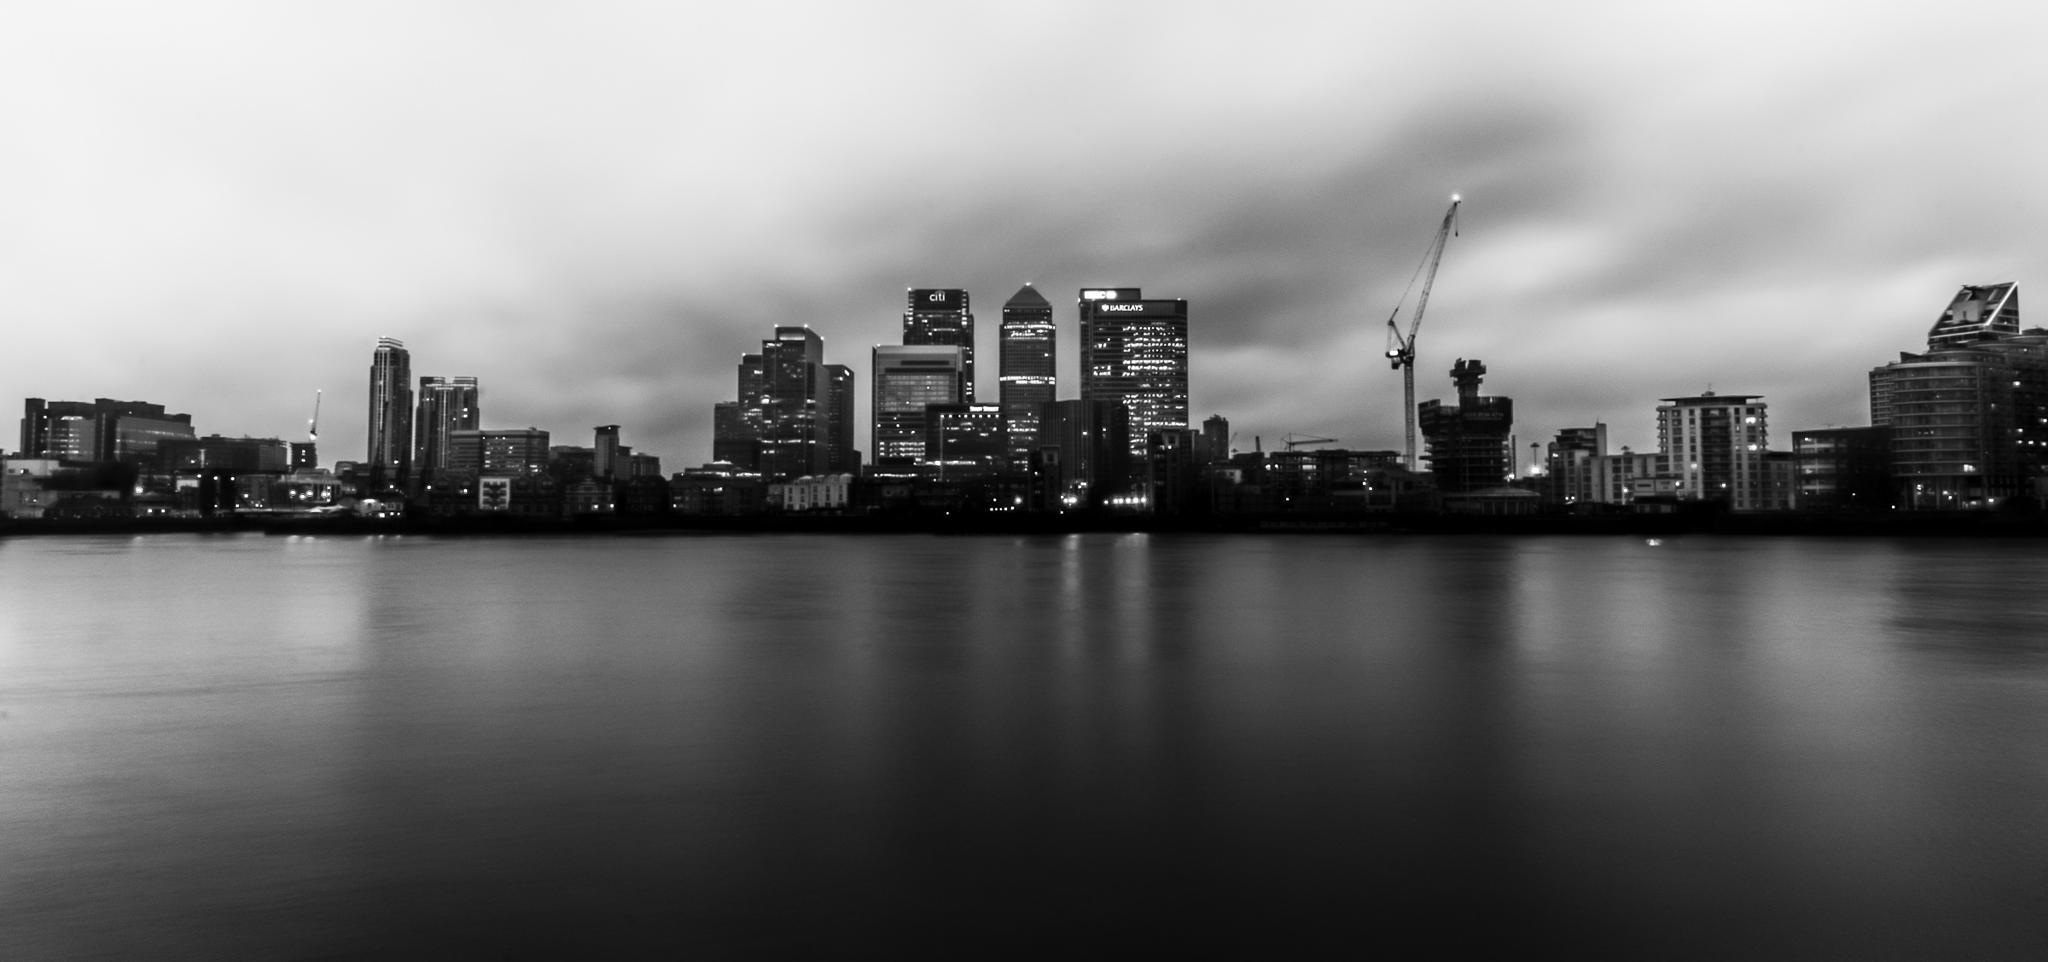 London Docklands by AM Photography